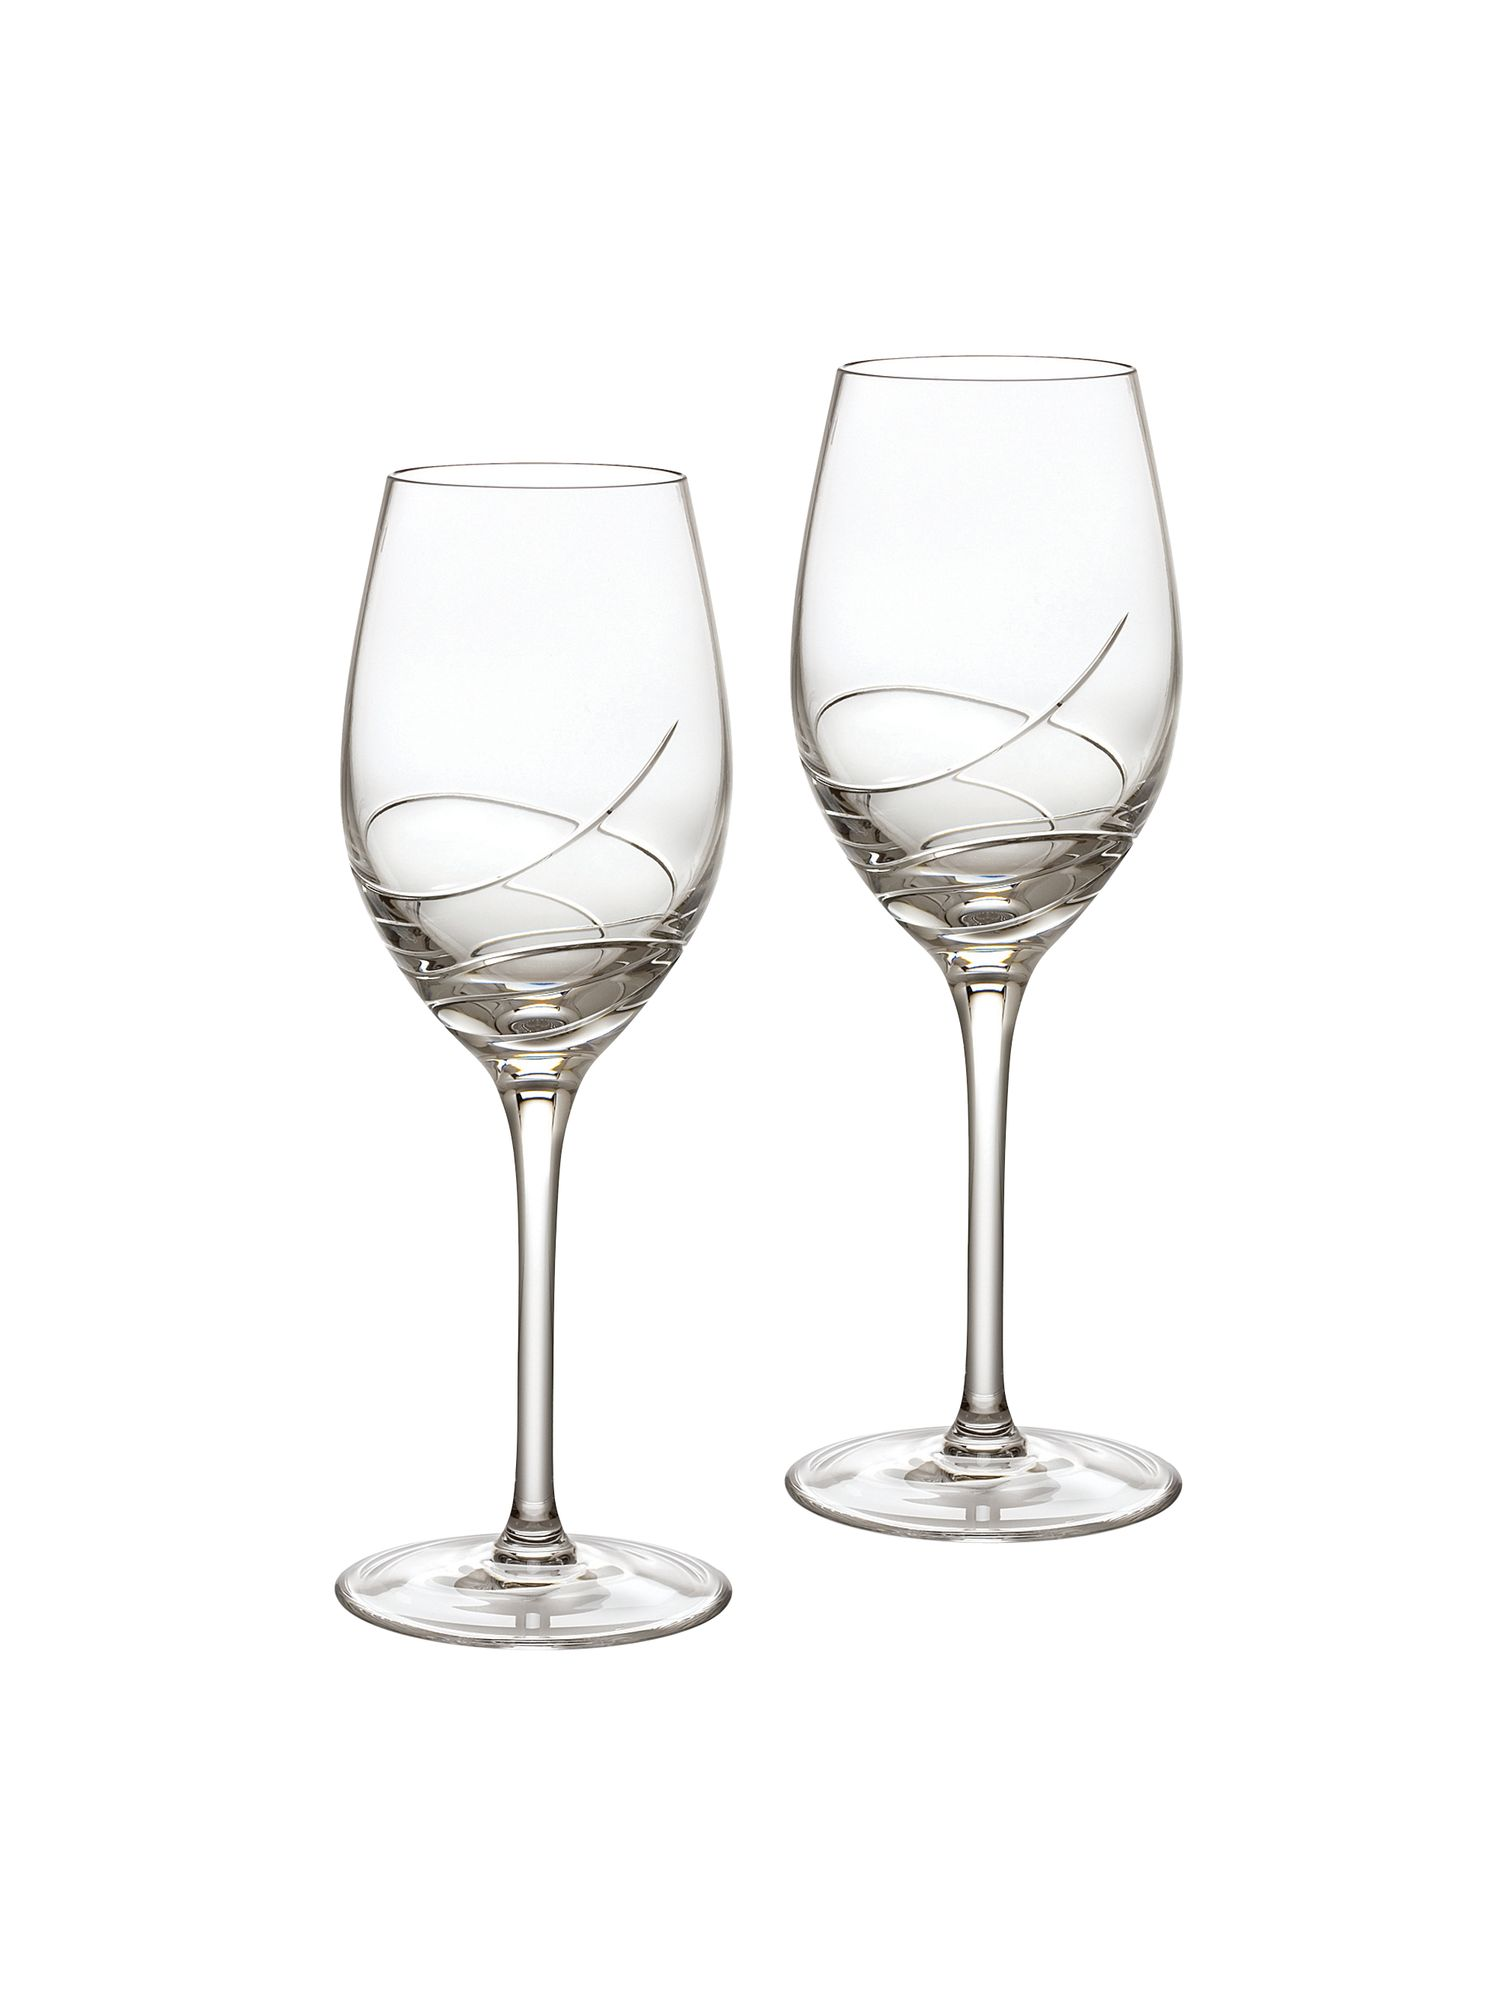 Ballet ribbon white wine glass, set of 2